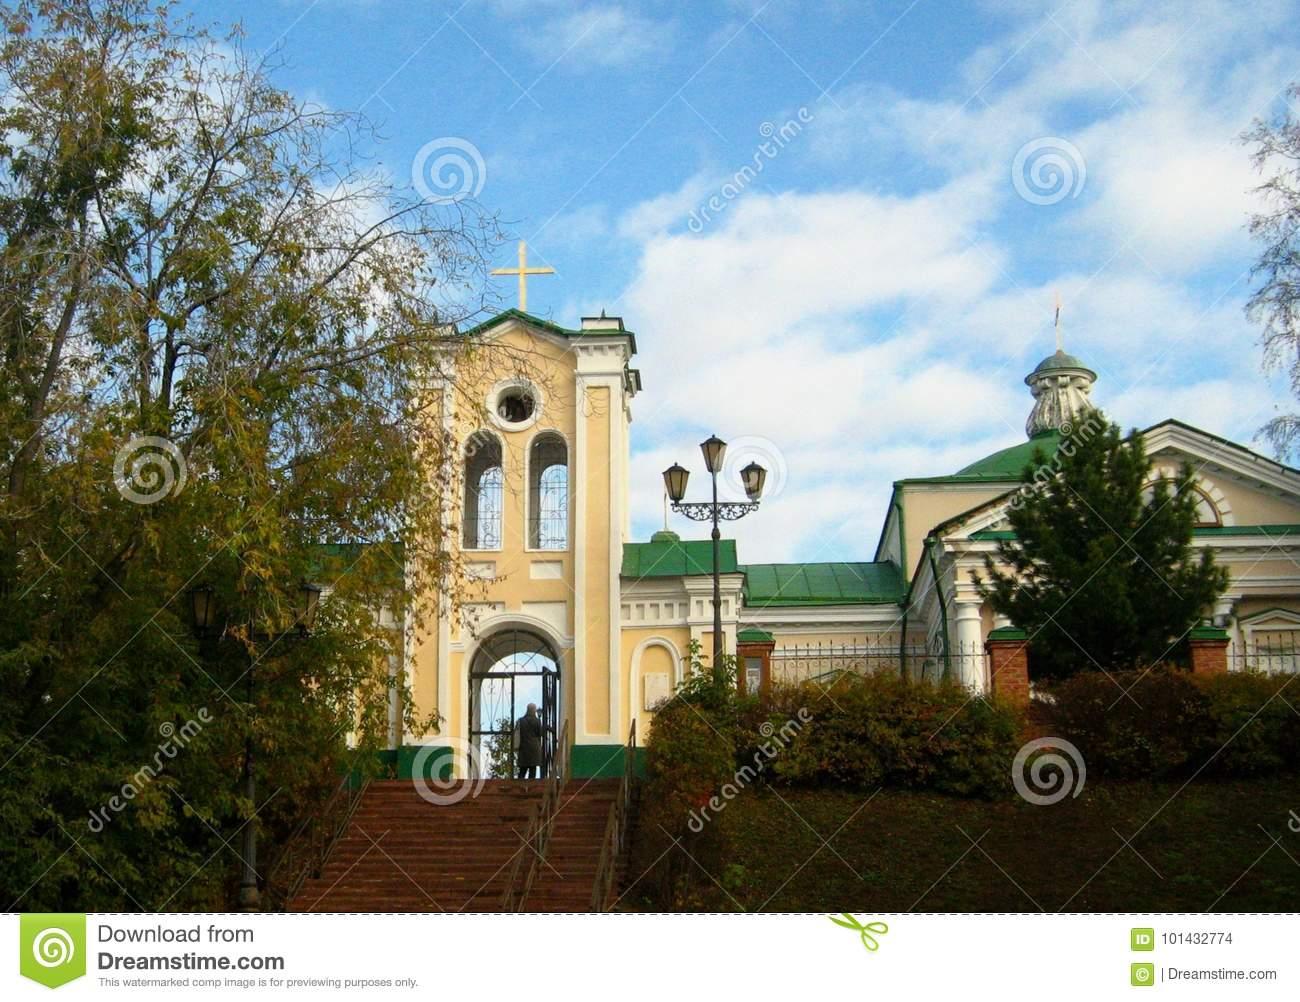 The Church in the Siberian city of Tomsk.